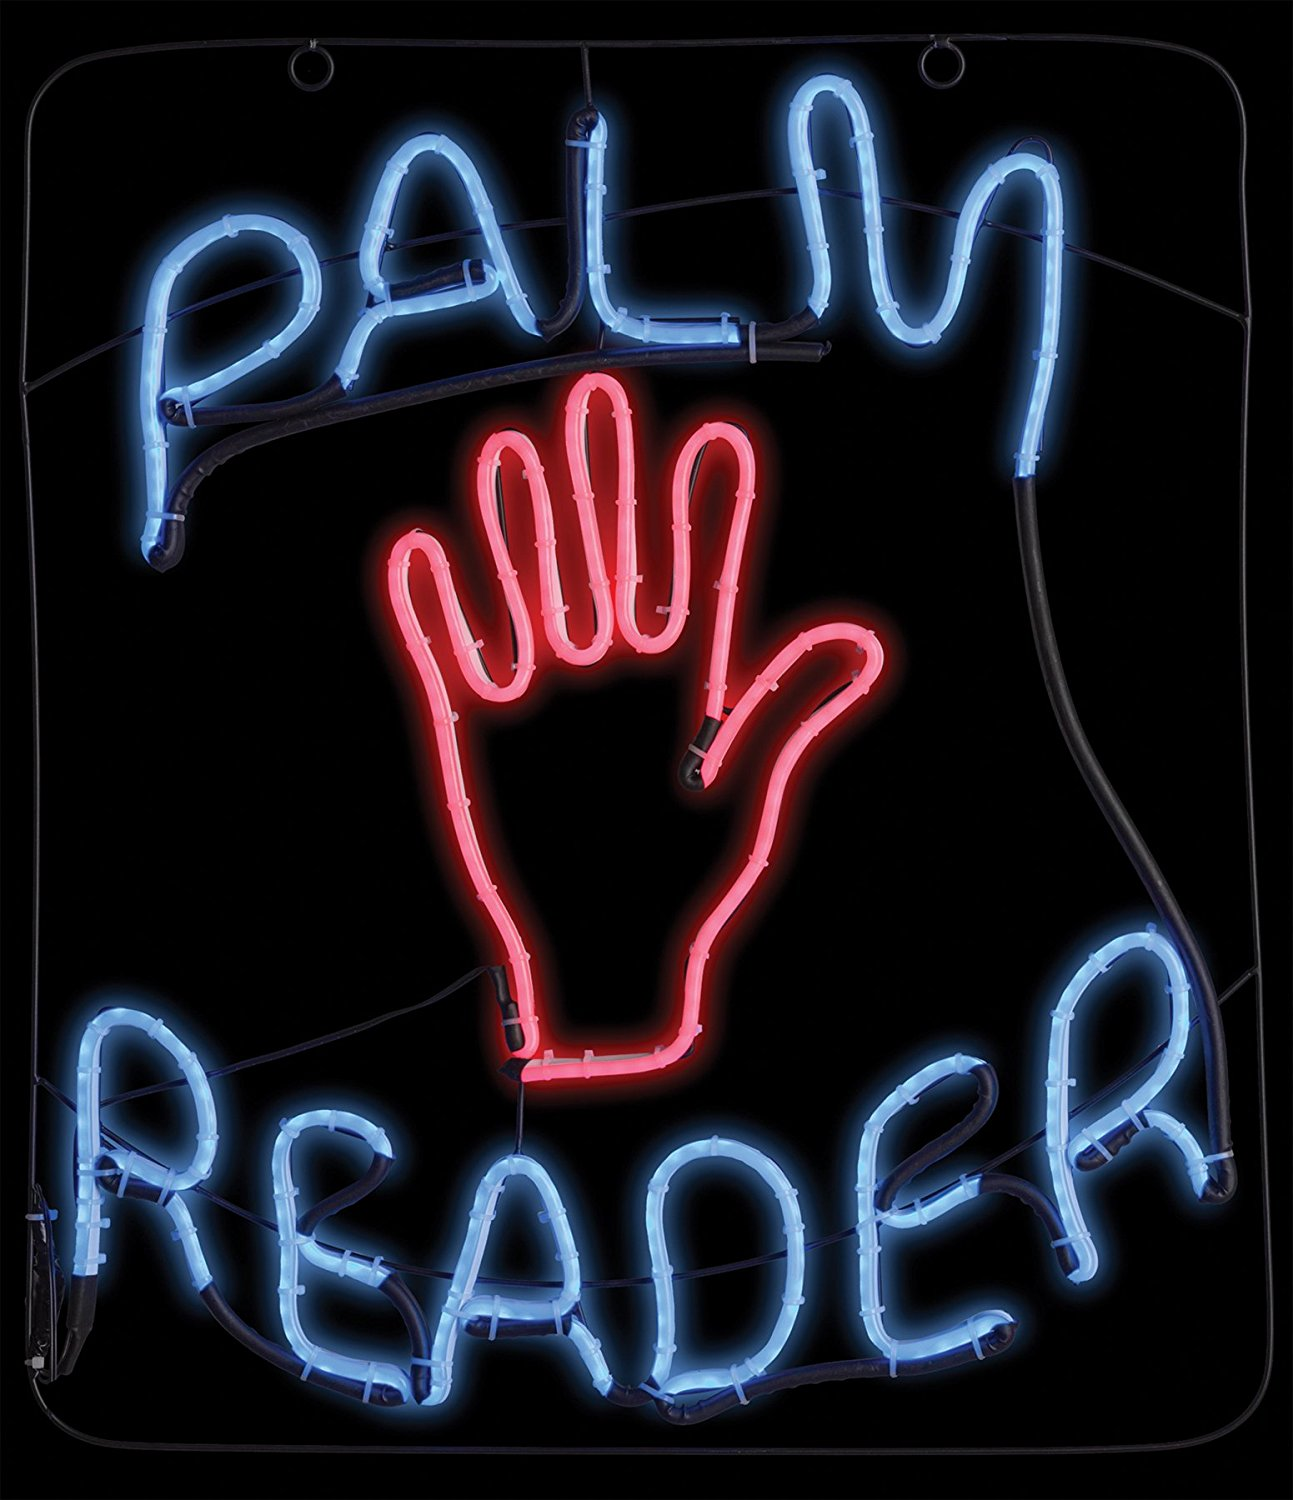 Palm Reader Neon Sign with Hand - Fortune Teller Halloween Prop